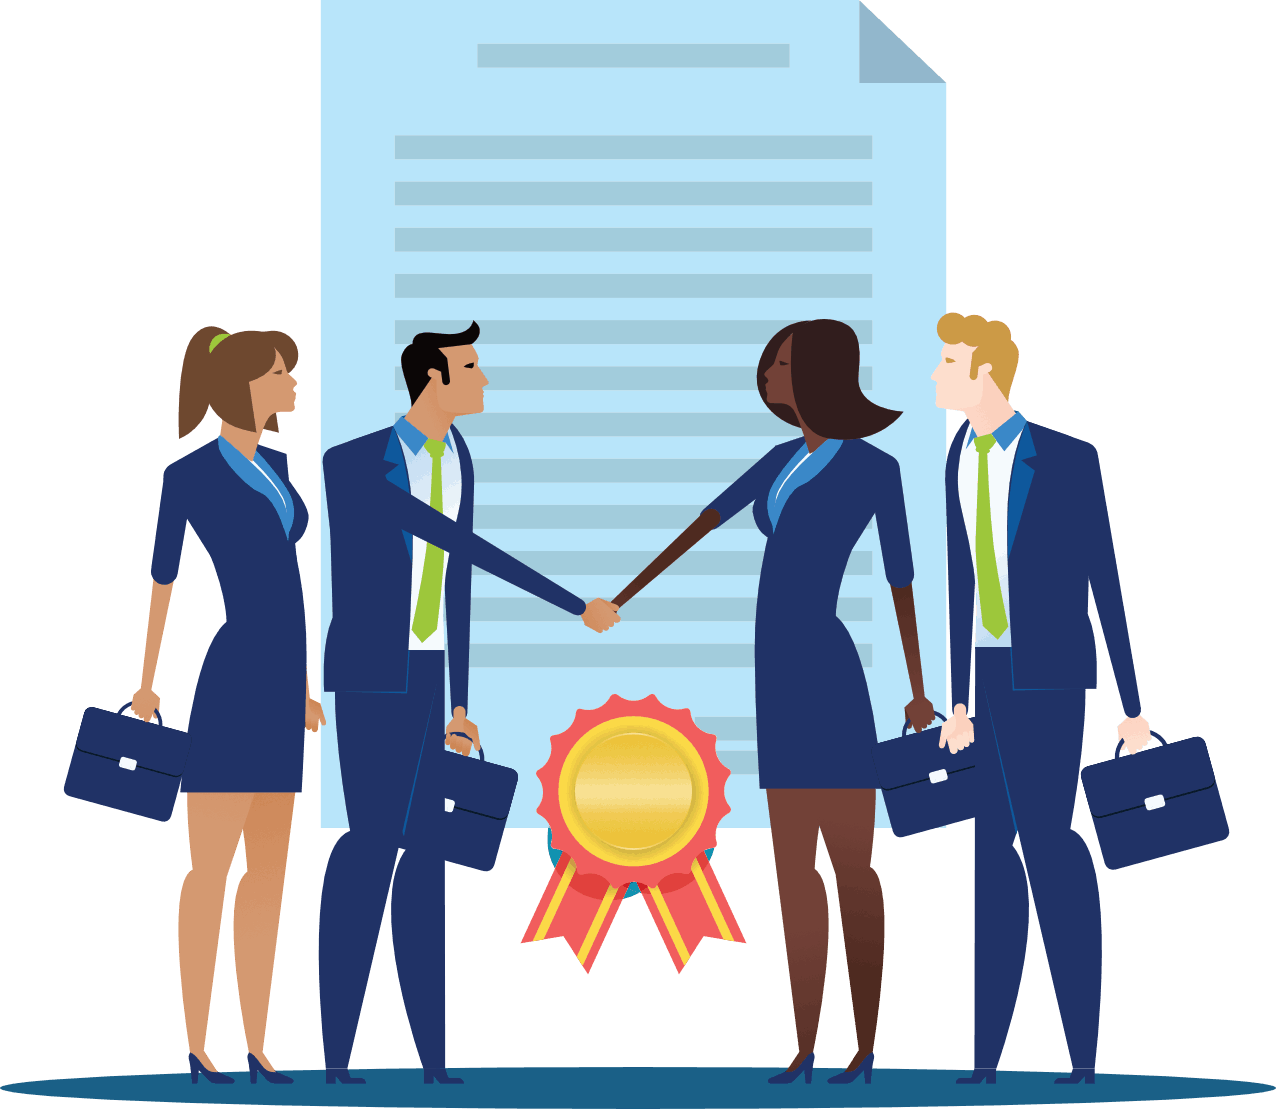 transactify-legal-business-contracts-hero-illustration-updated